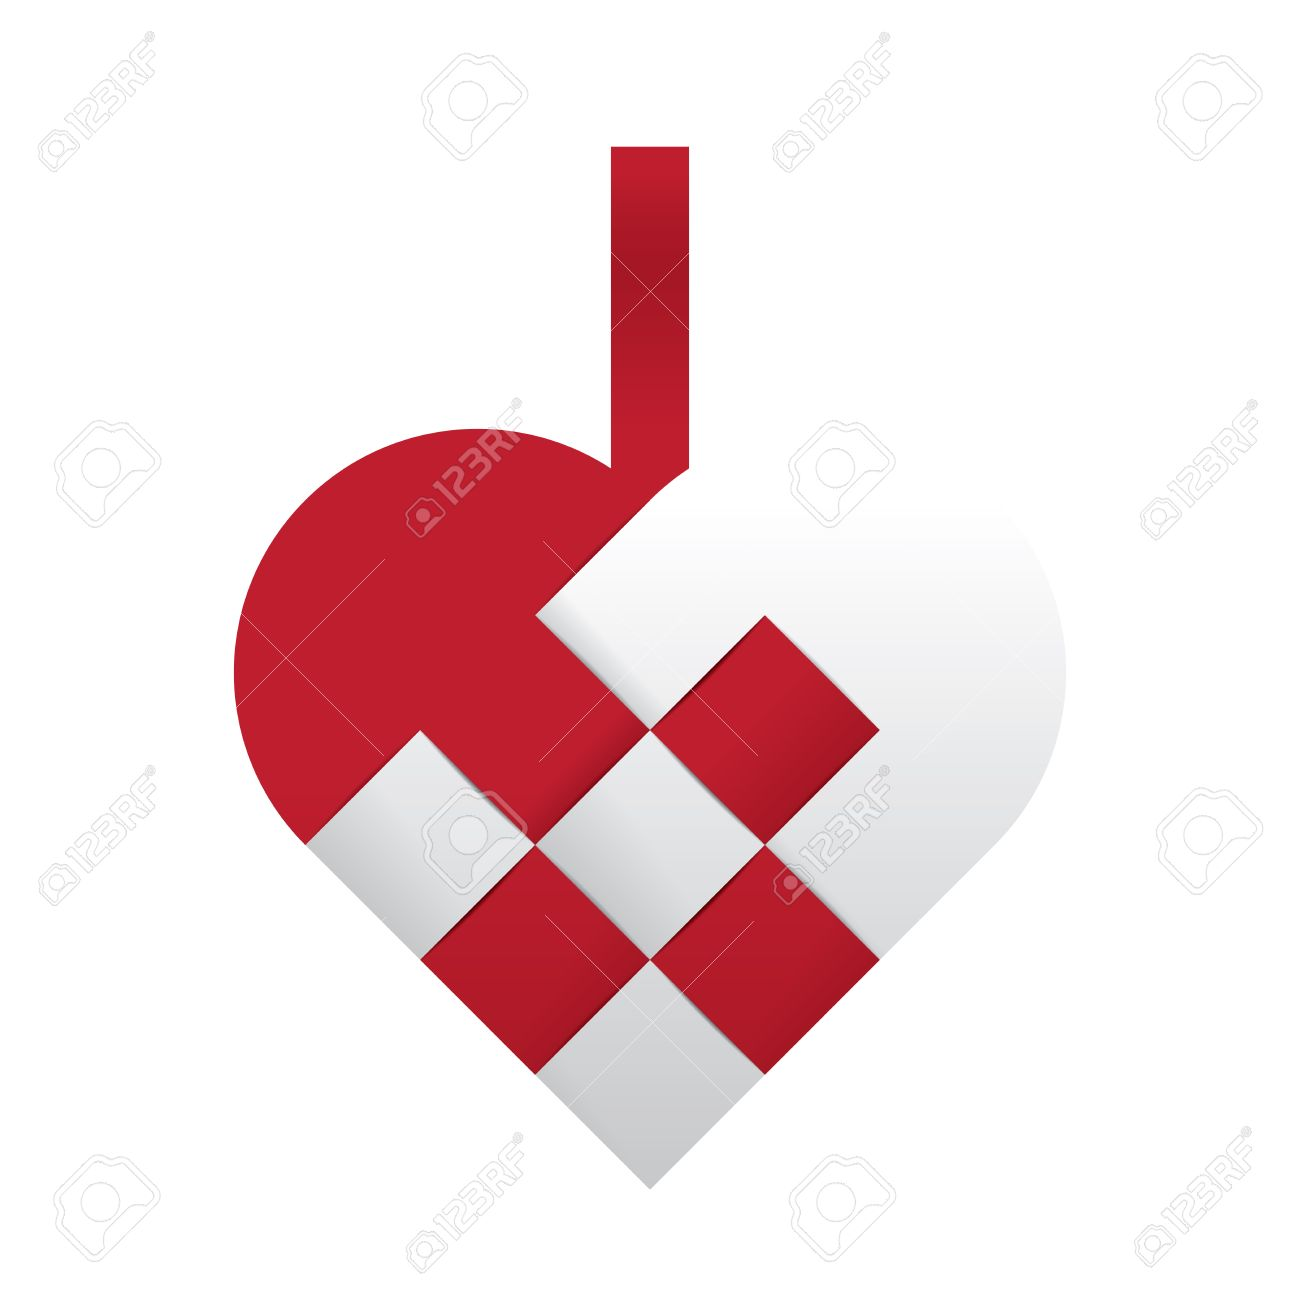 Christmas Heart Vector.Simple Red And White Braided Christmas Heart Shaped Vector Illustration